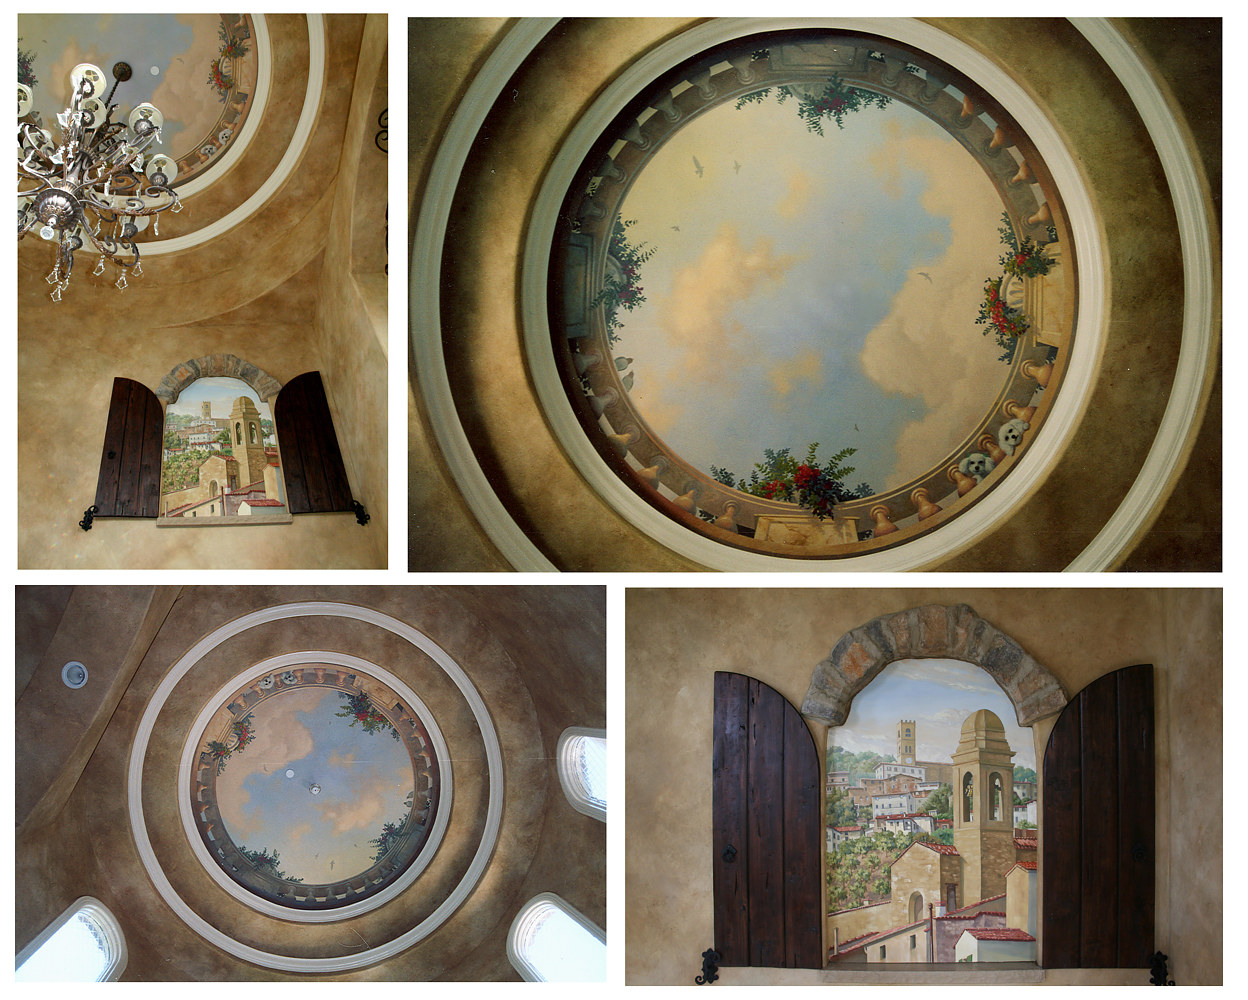 Ceiling and Wall Mural Against Faux Finish of Entry by Robert Milling